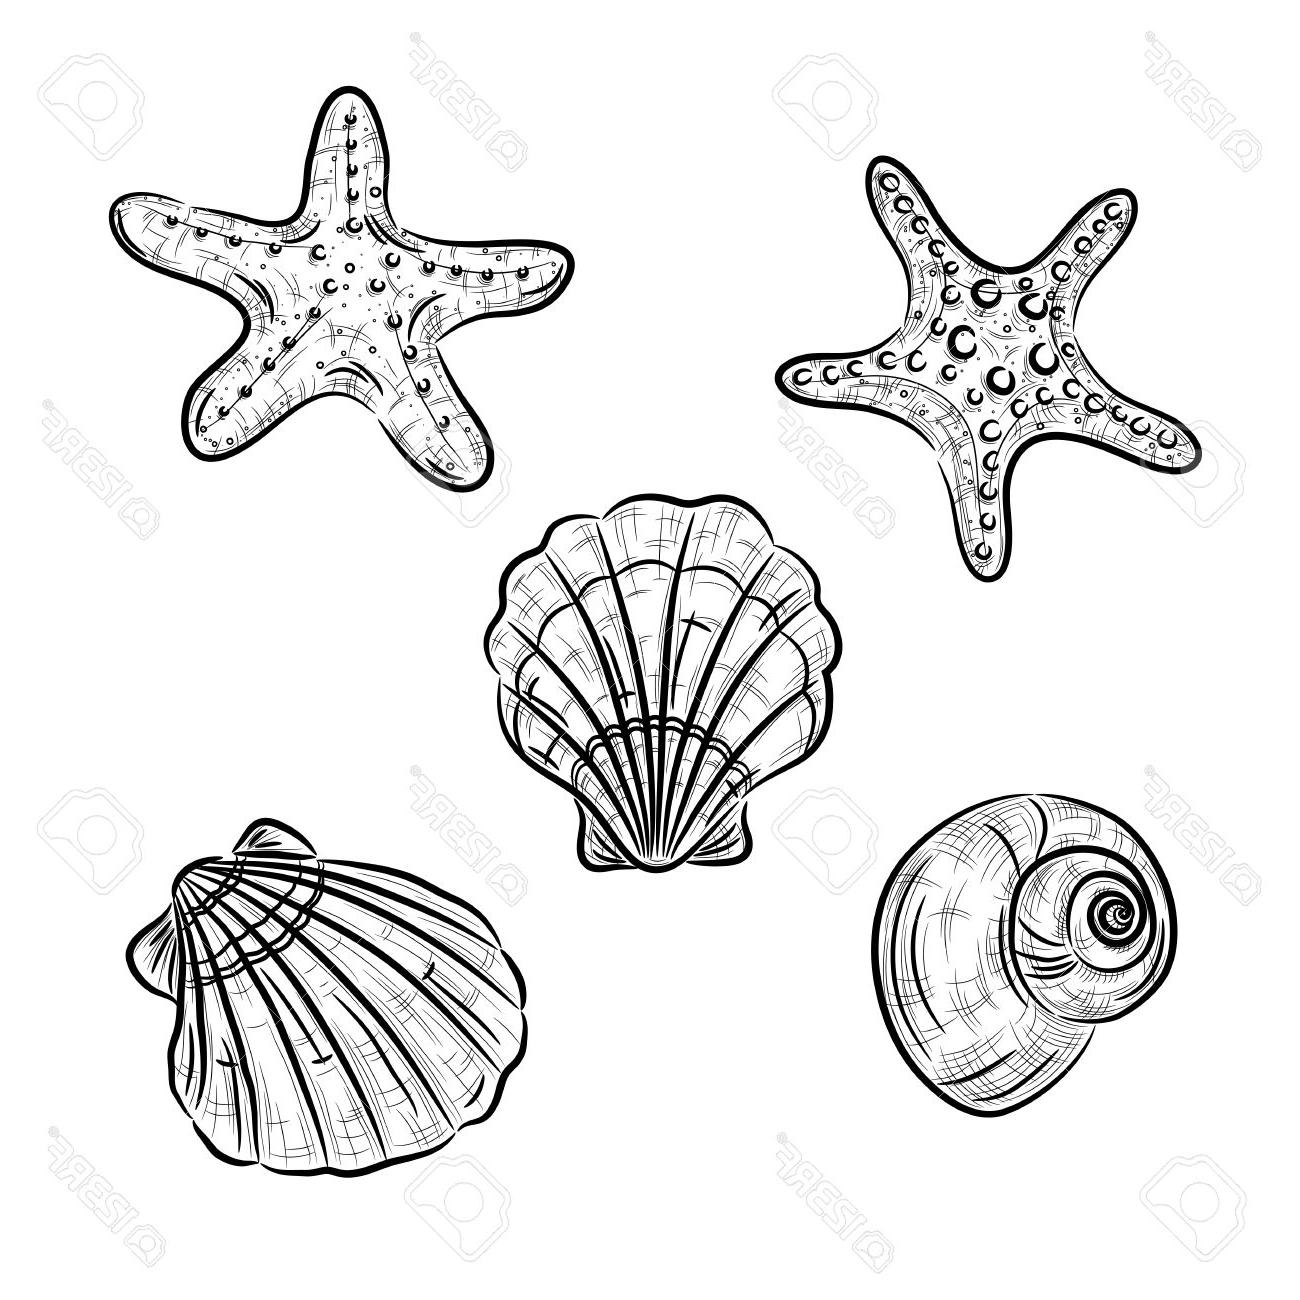 1300x1300 Top Sketch Of Starfish Scallop And Snail Stock Vector Cdr